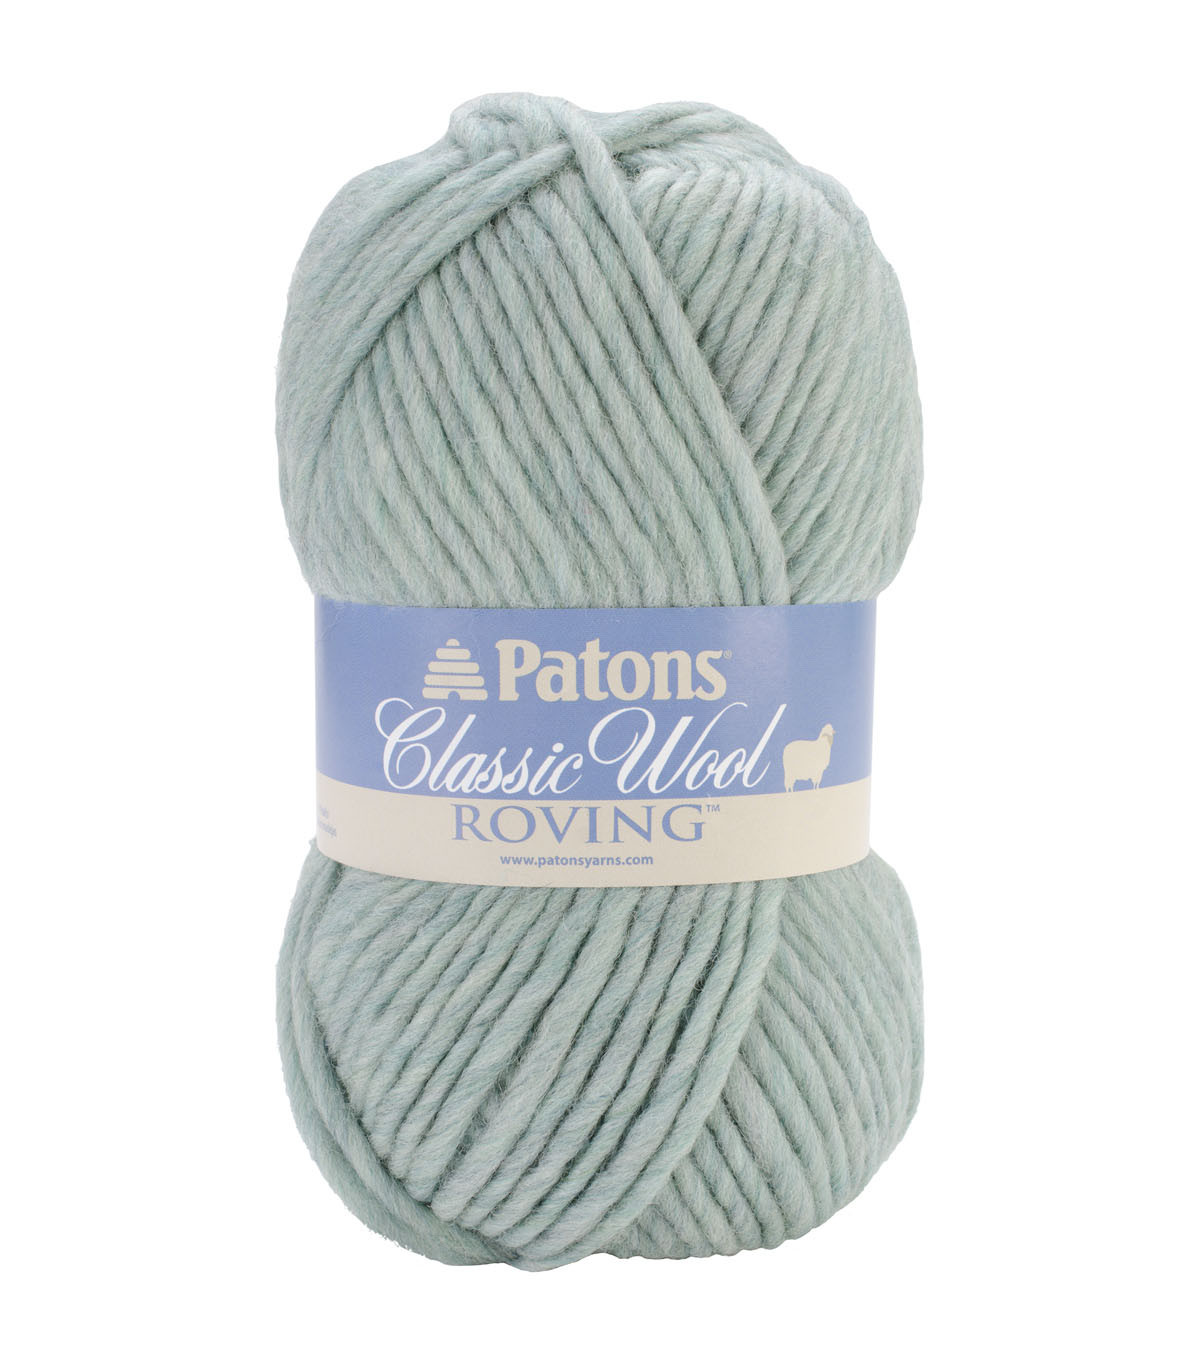 Best Of Patons Classic Wool Roving Yarn at Joann Patons Roving Wool Of Innovative 36 Pictures Patons Roving Wool